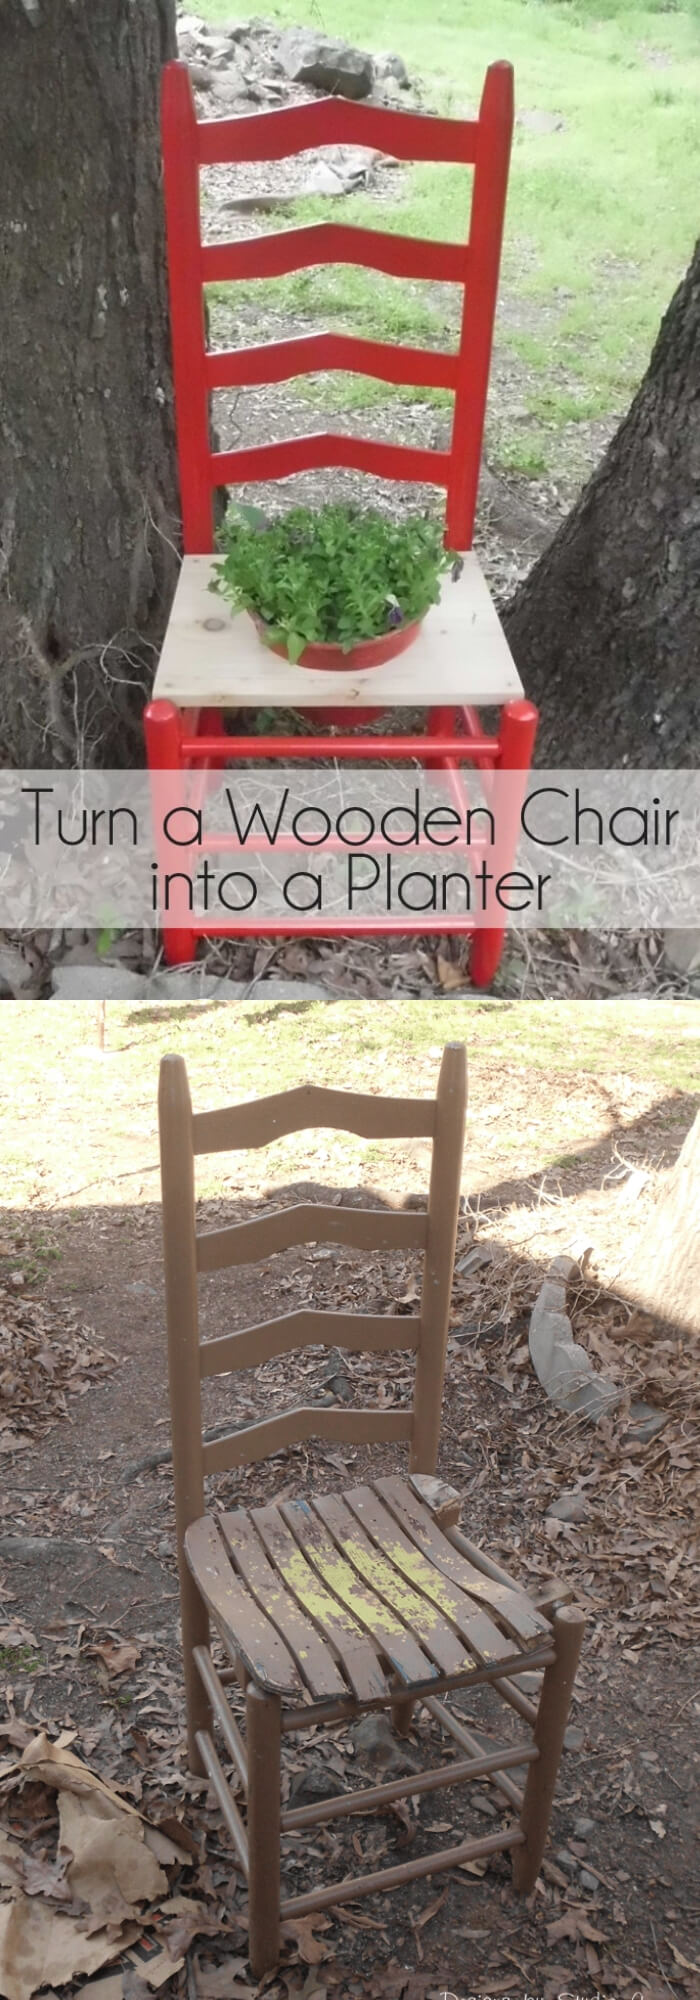 Turn a wooden chair into a planter   Creative Upcycled DIY Chair Planter Ideas For Your Garden